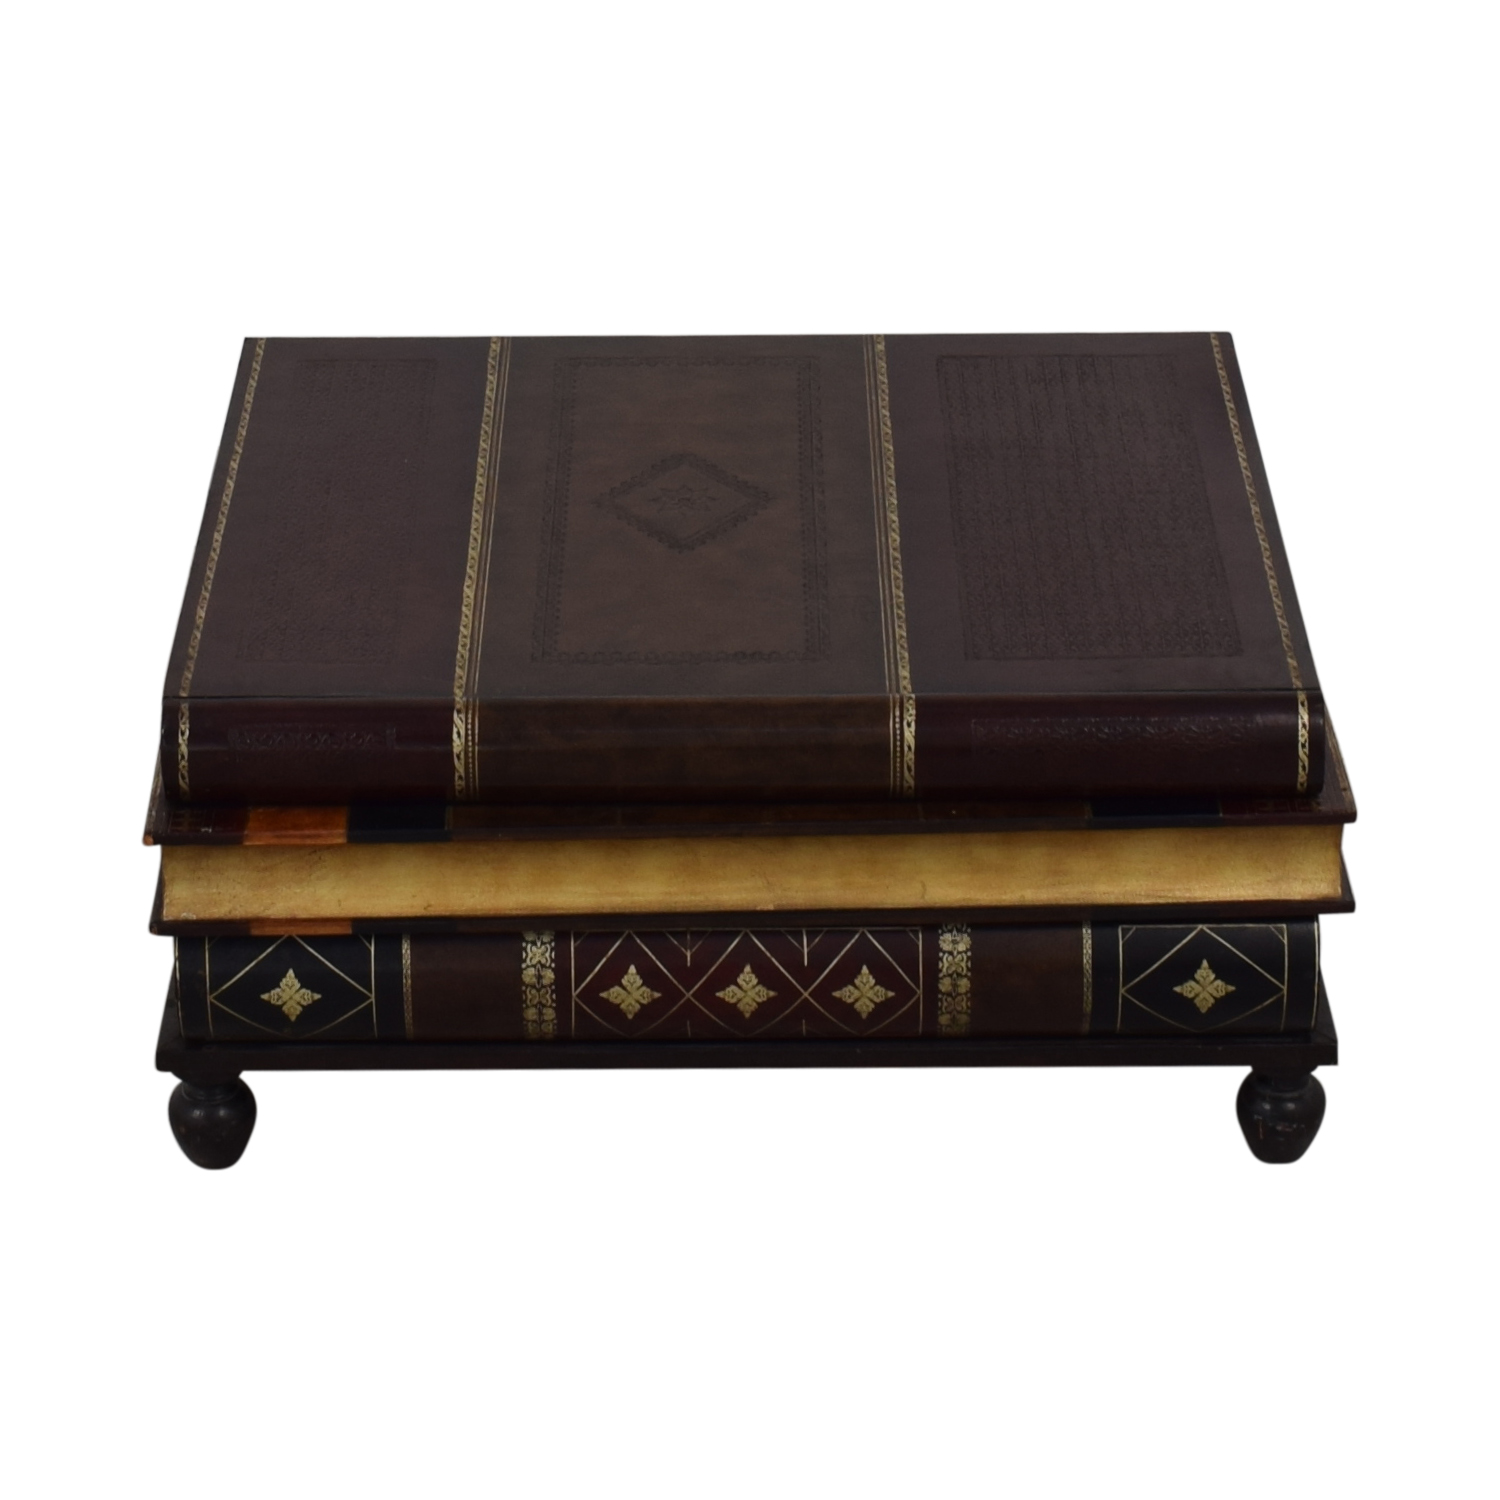 Maitland-Smith Stacked Books Style Coffee Table sale